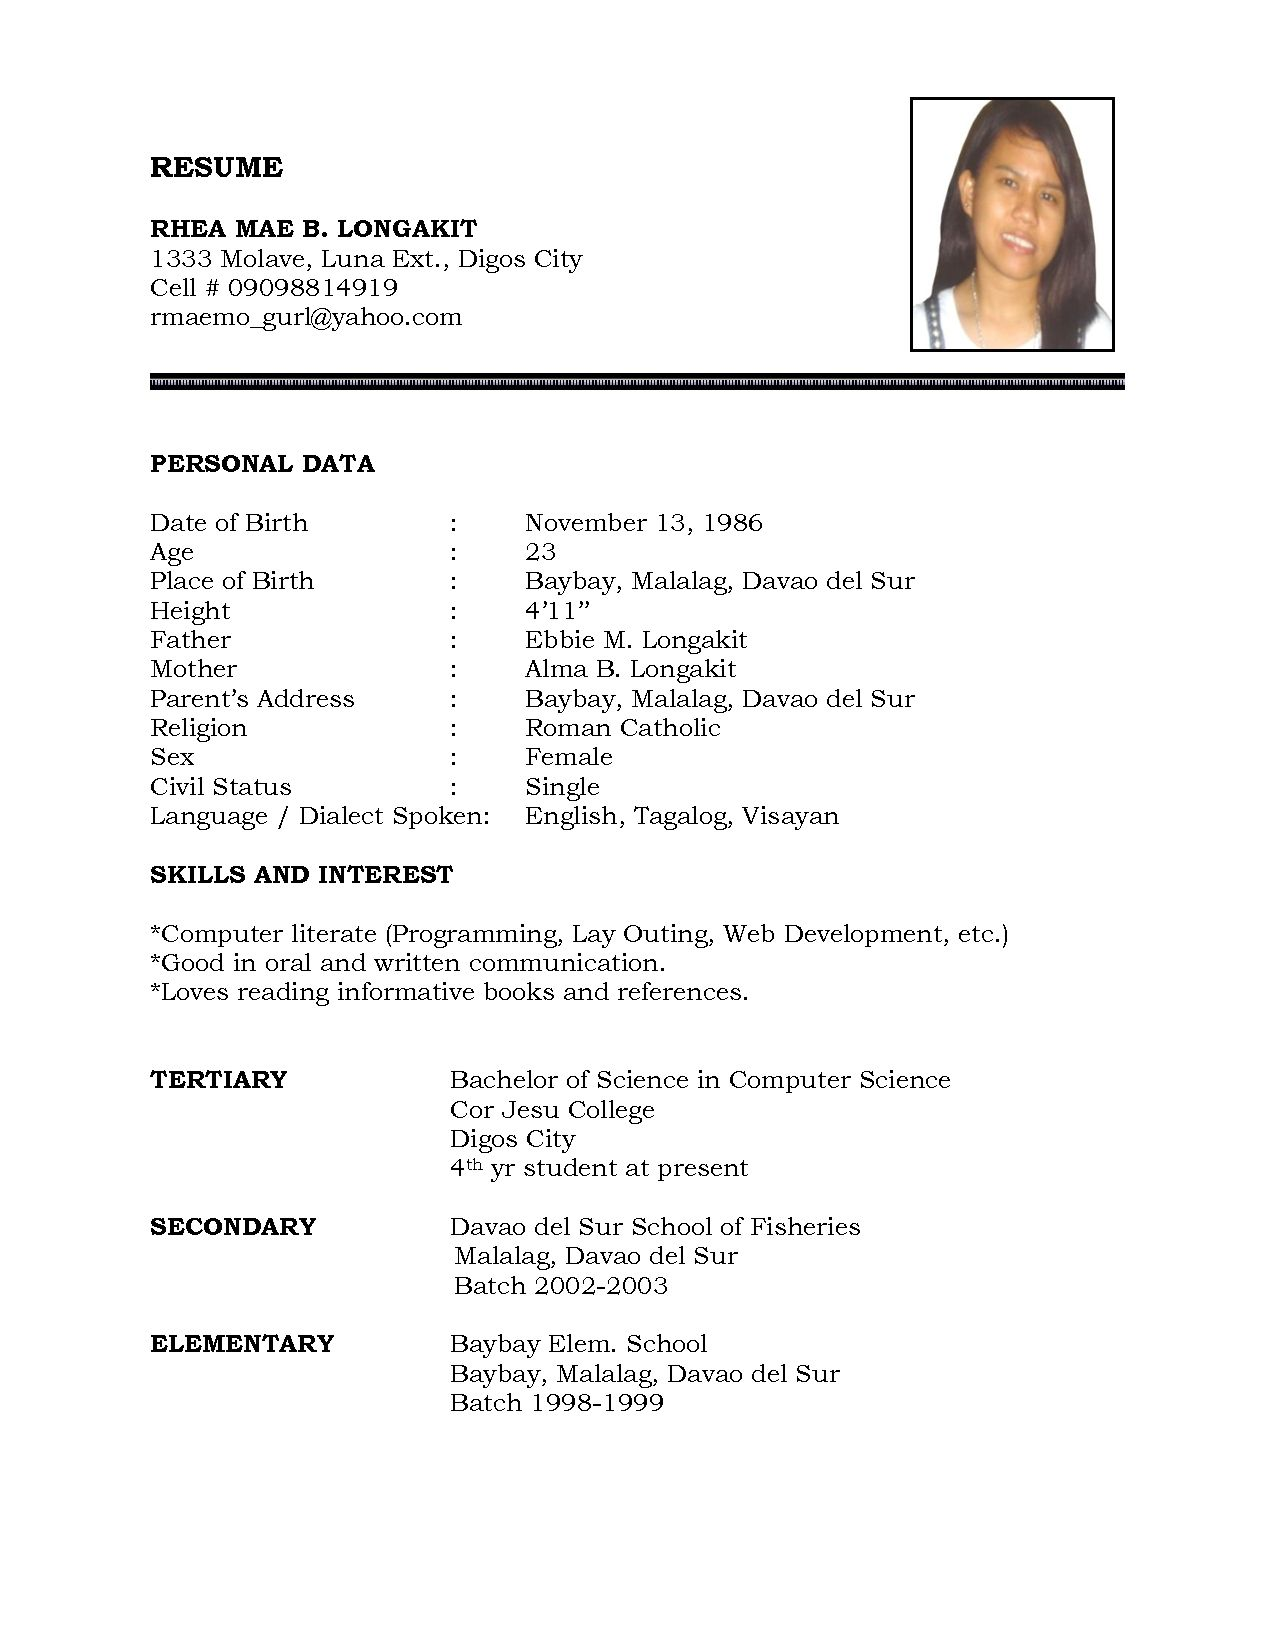 resume sample simple de9e2a60f the simple format of resume for job - Resume Format For Job